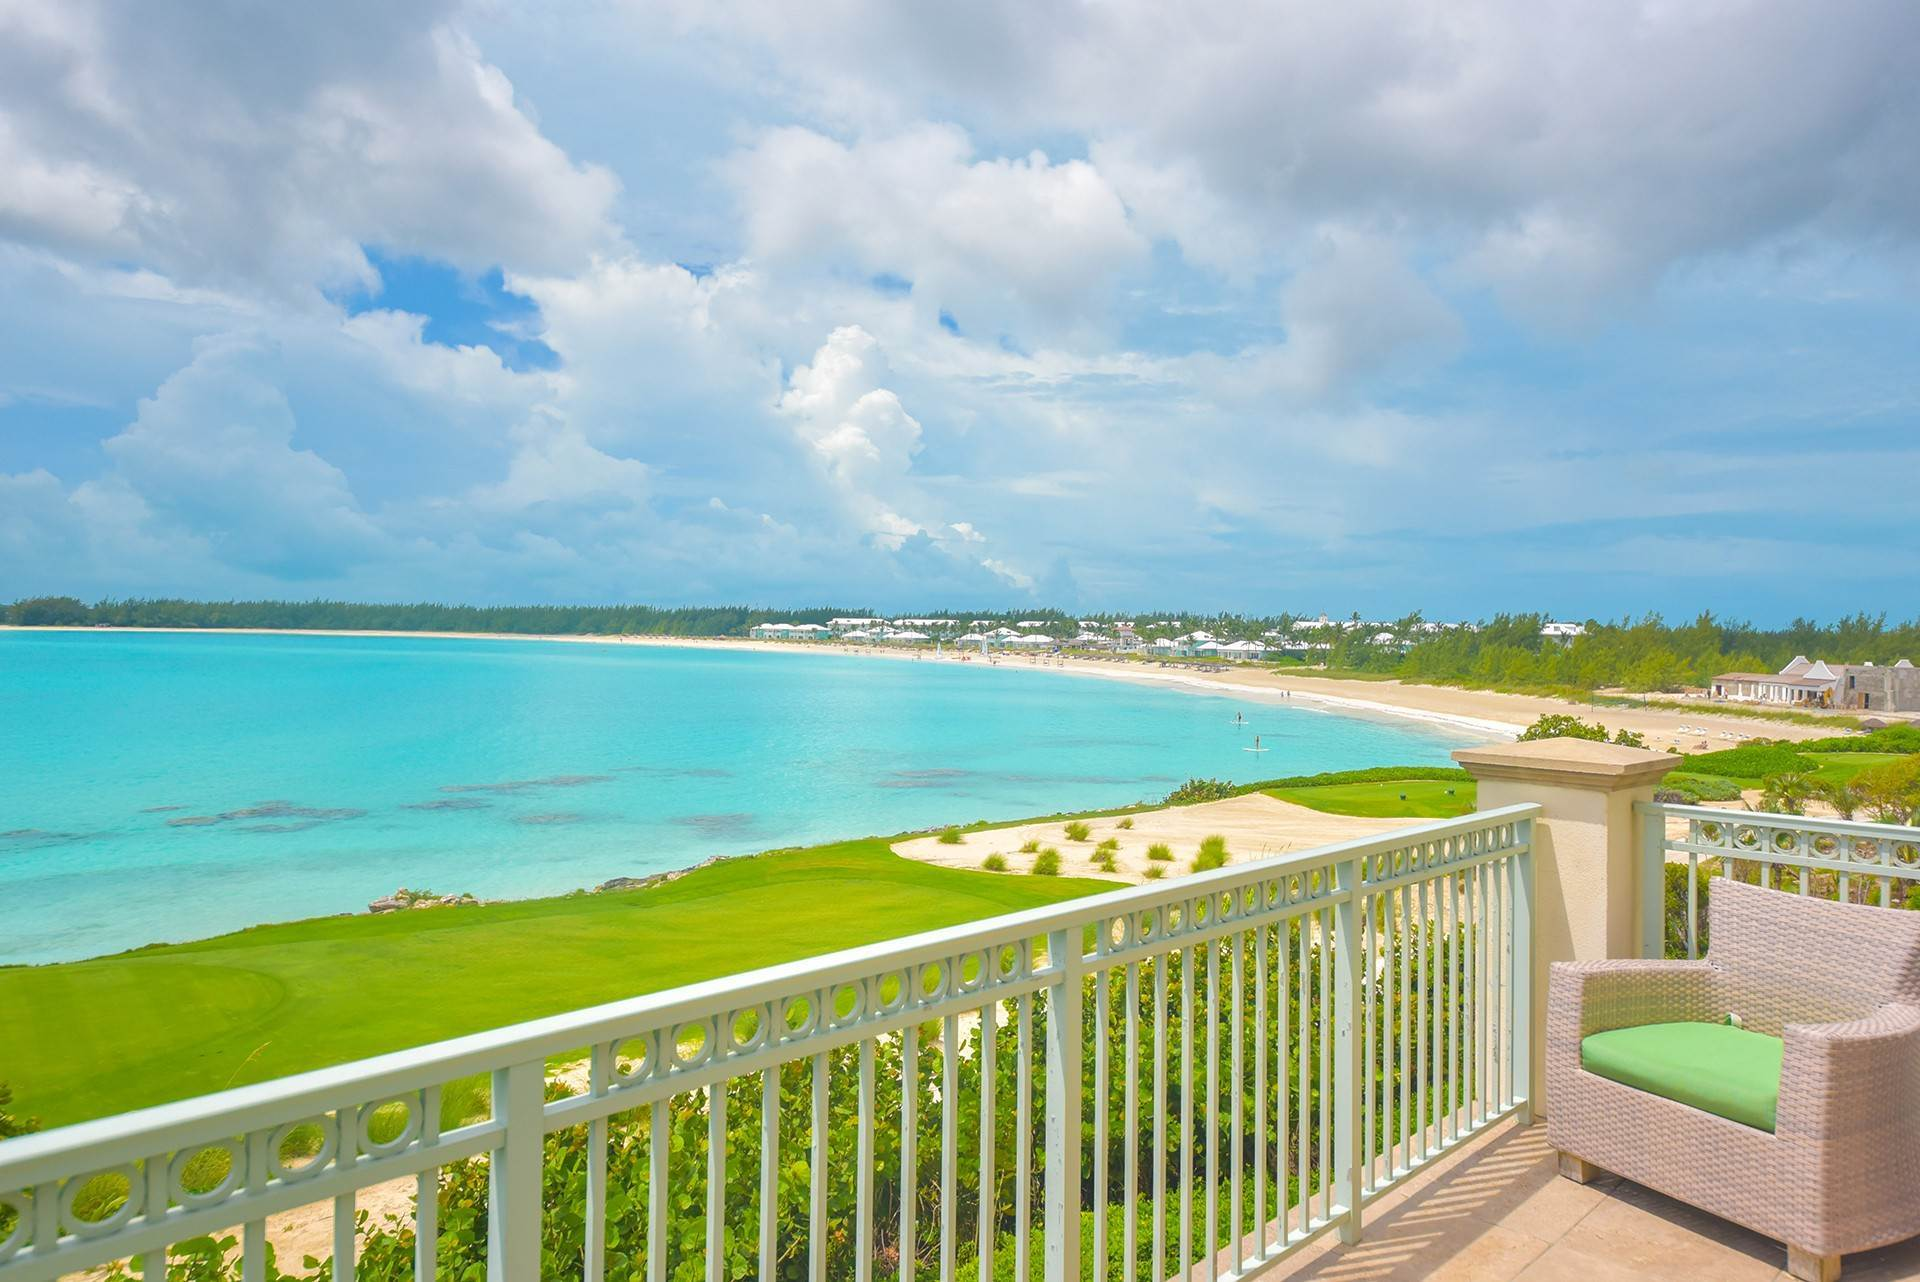 Co-op / Condo for Sale at Grand Isle Ocean Front Villa 1212 - MLS 37296 Emerald Bay, Exuma, Bahamas